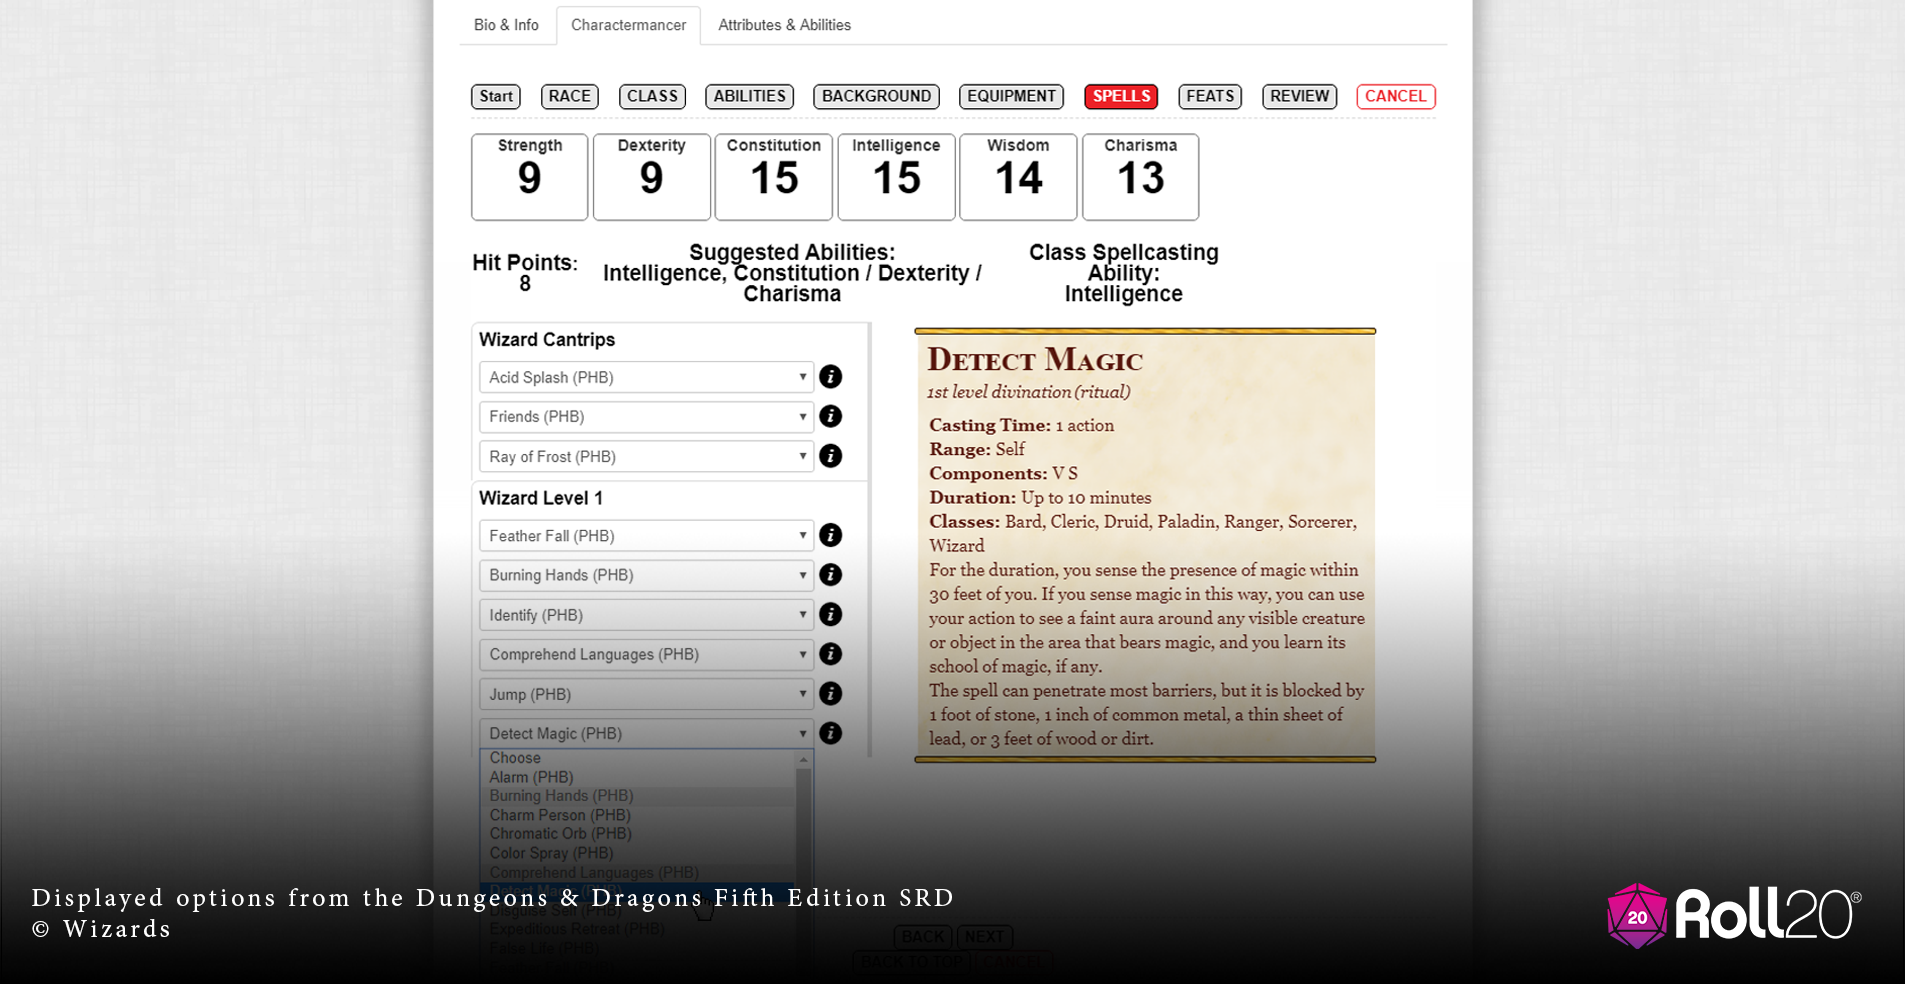 Roll20 Adds Charactermancer Character-Building Helper